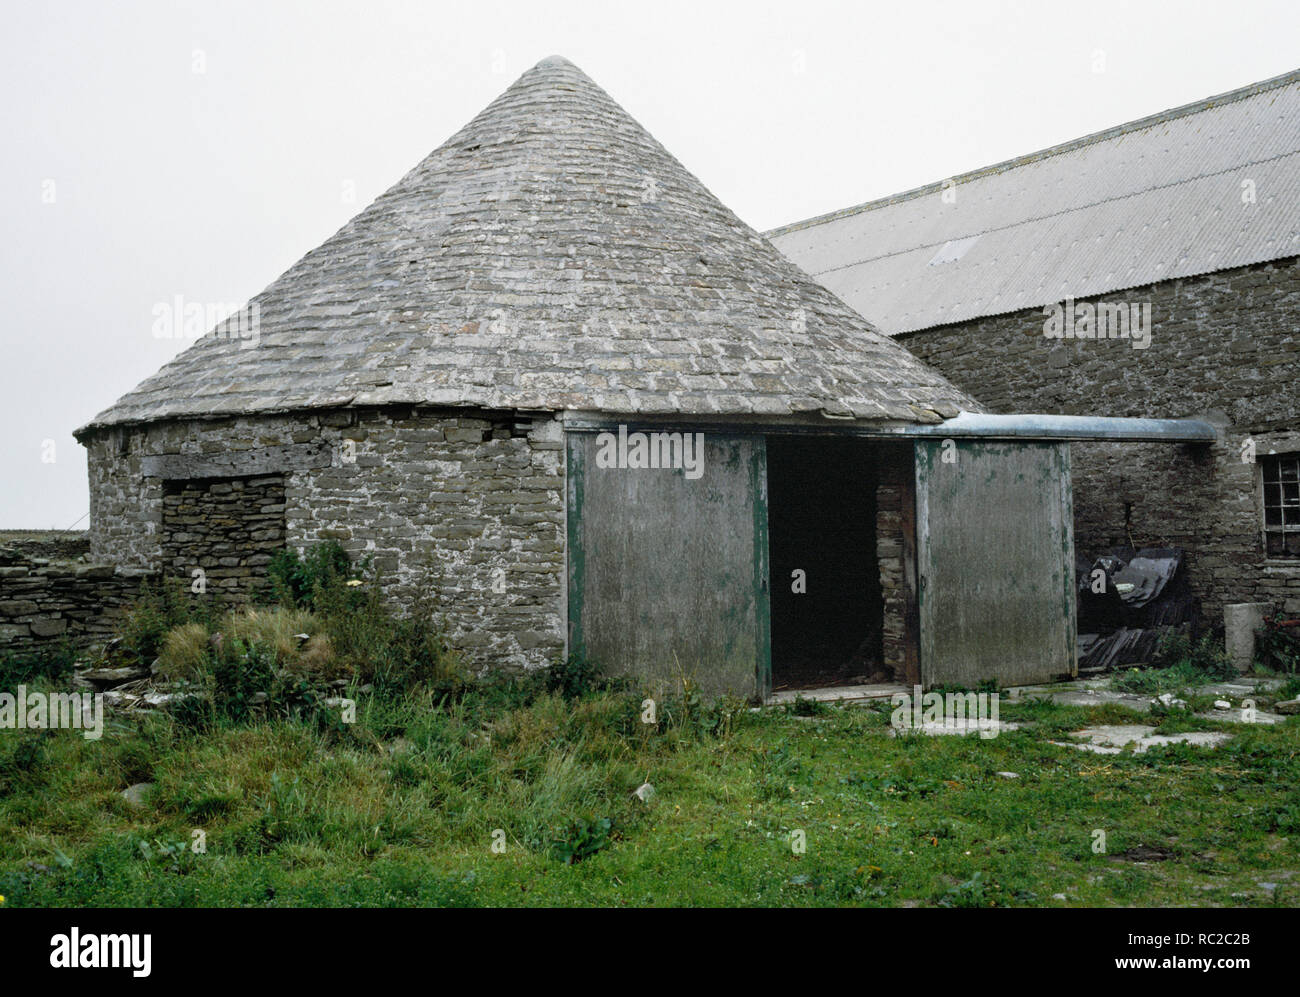 Holland Farm Horse engine house or horse mill tramp, Papa Westray, Orkney. The geared mechanism drove a threshing machine in the adjacent building. - Stock Image